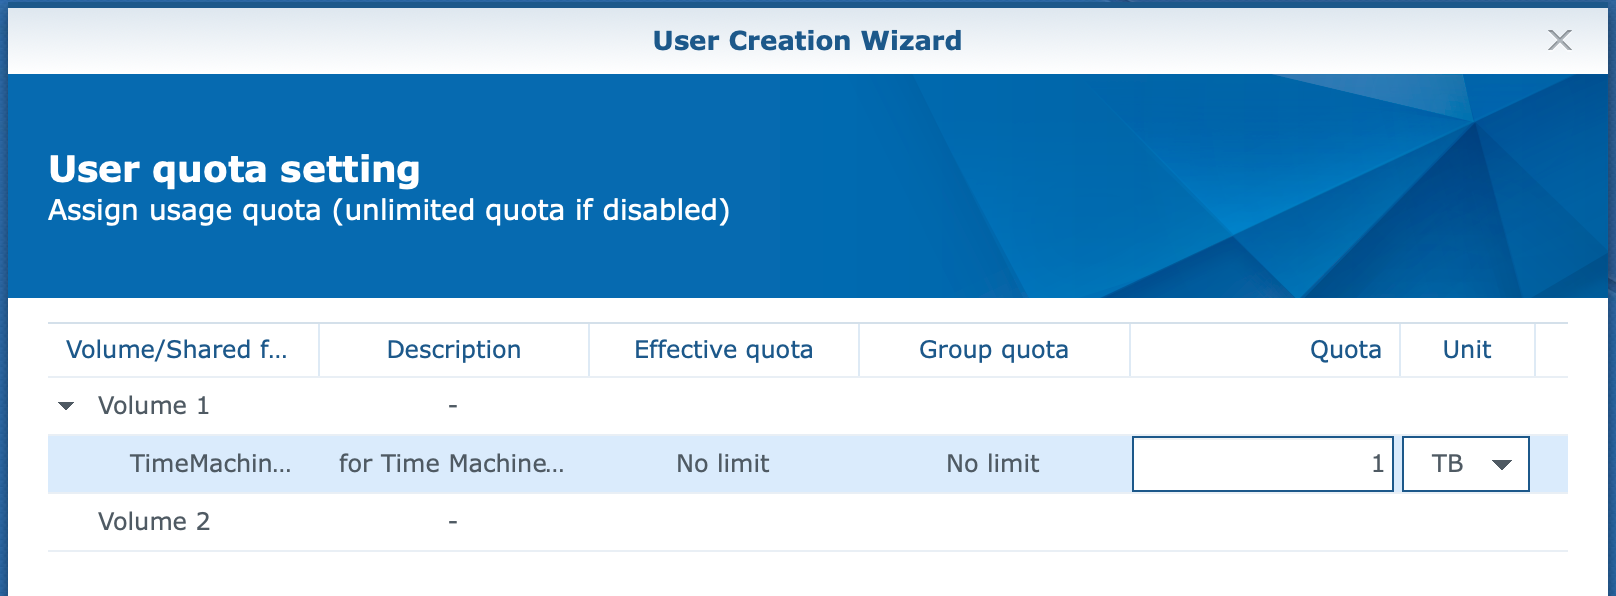 synology, user create wizard, dsm6